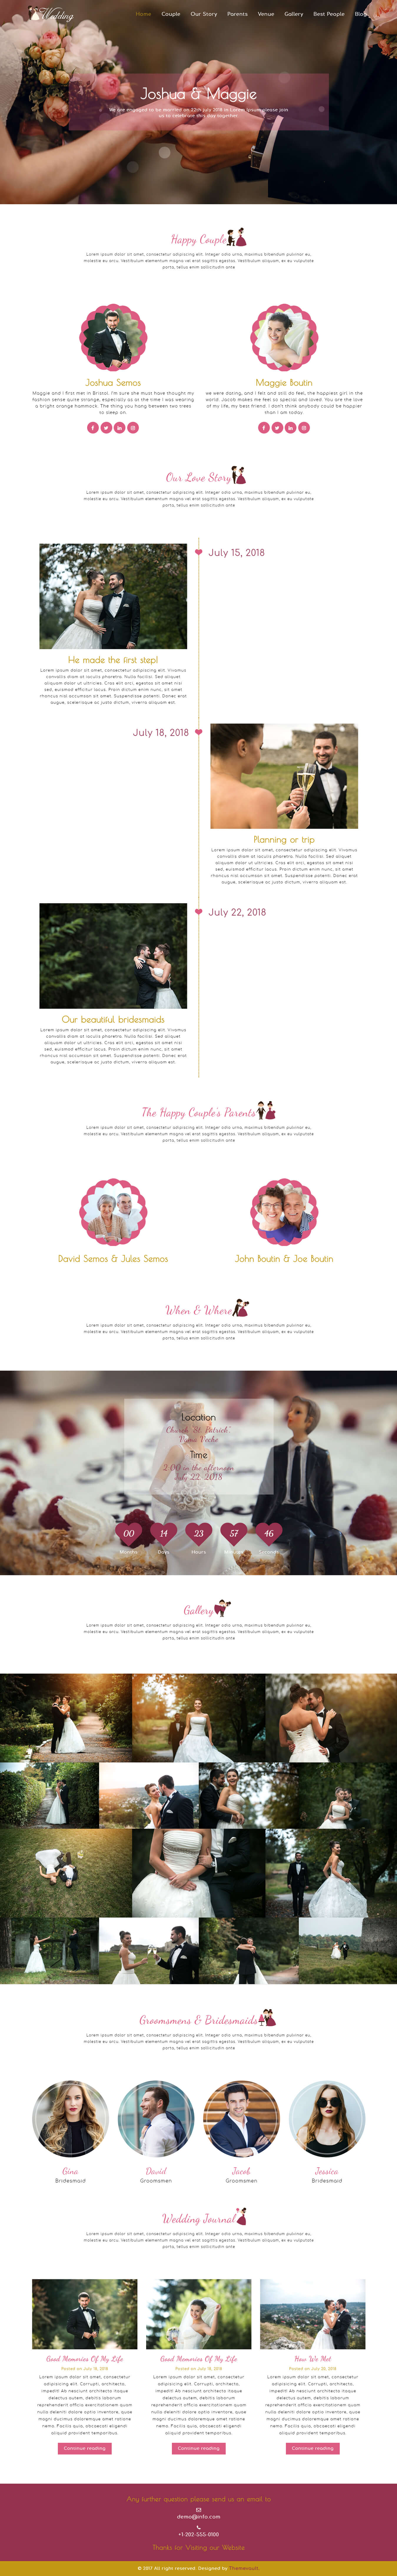 WeWedding - Responsive Elegant Wedding Website Template